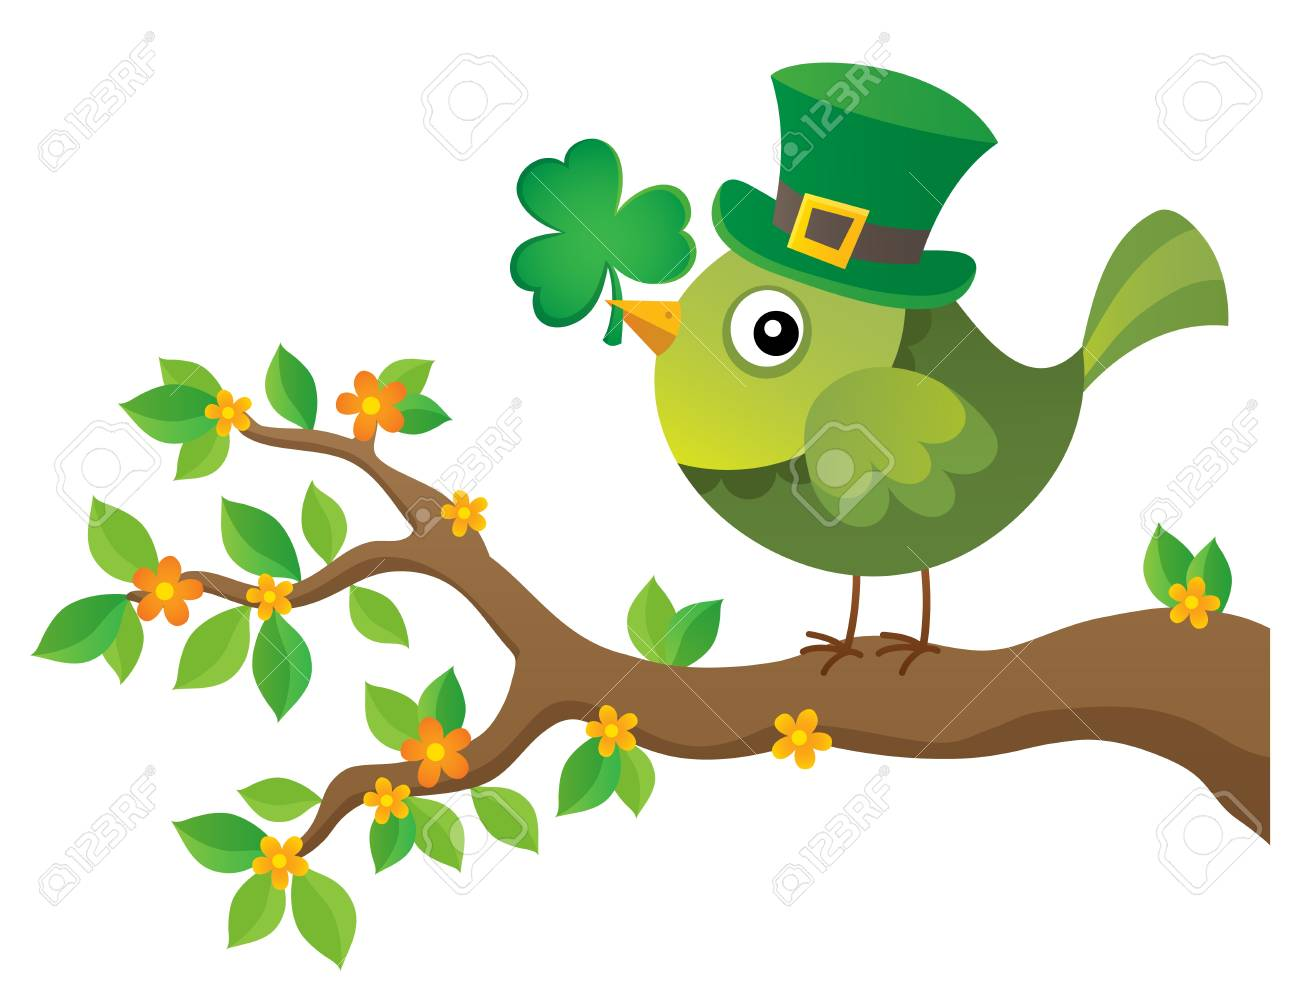 Image result for St. patrick's day bird clipart